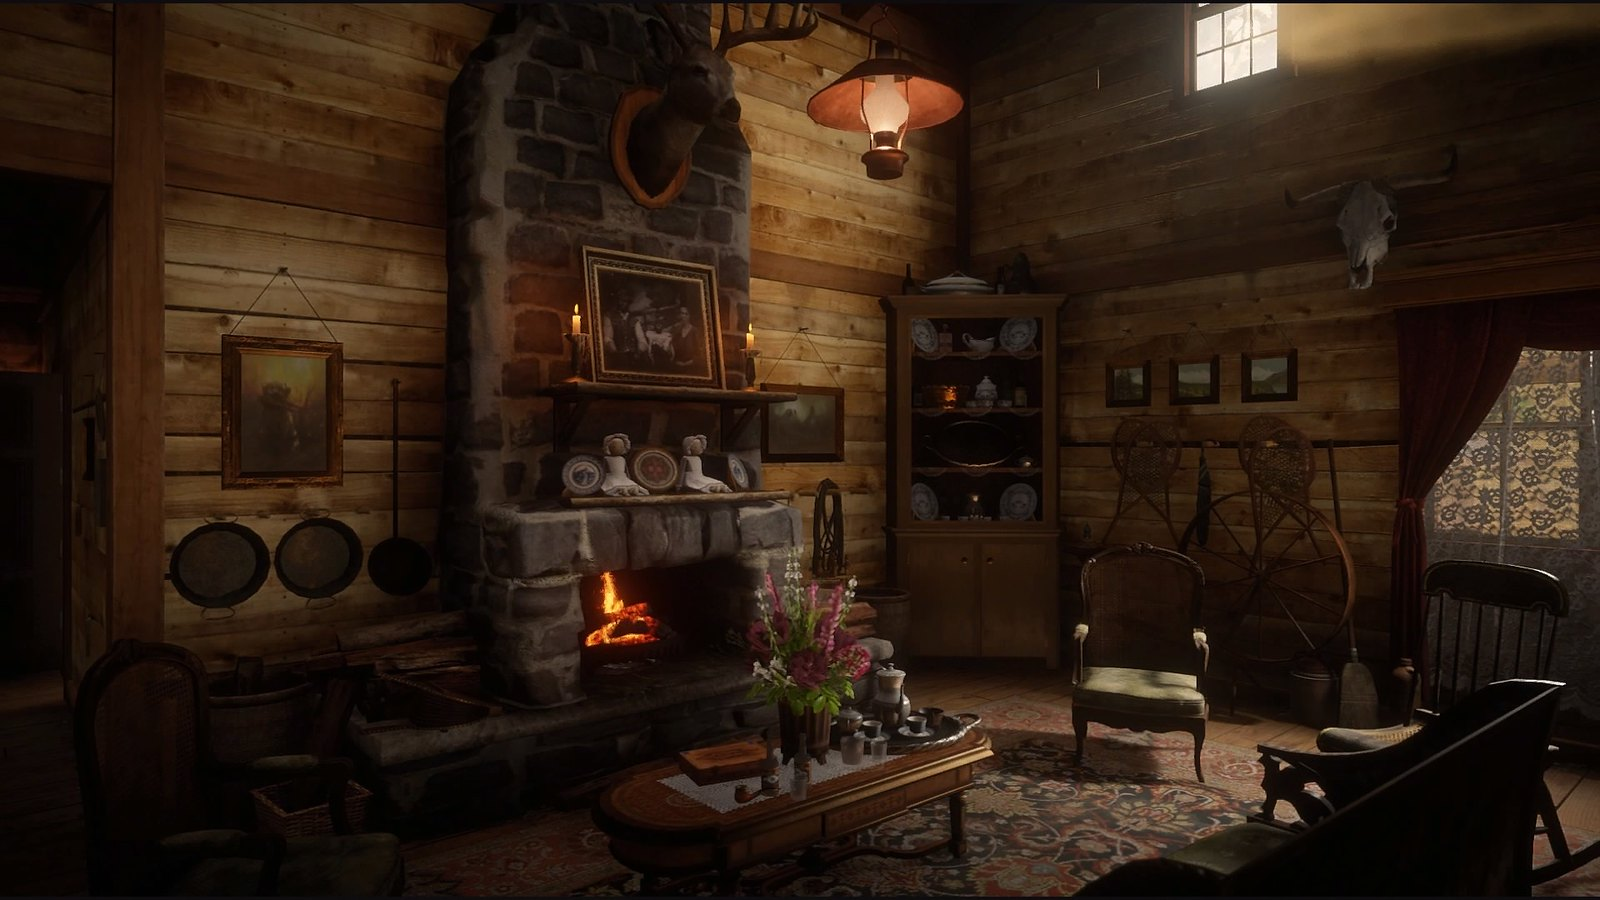 """Red Dead Redemptione"""" by SnakeDrone, shared using Attribution 2.0 Generic CC BY 2.0"""